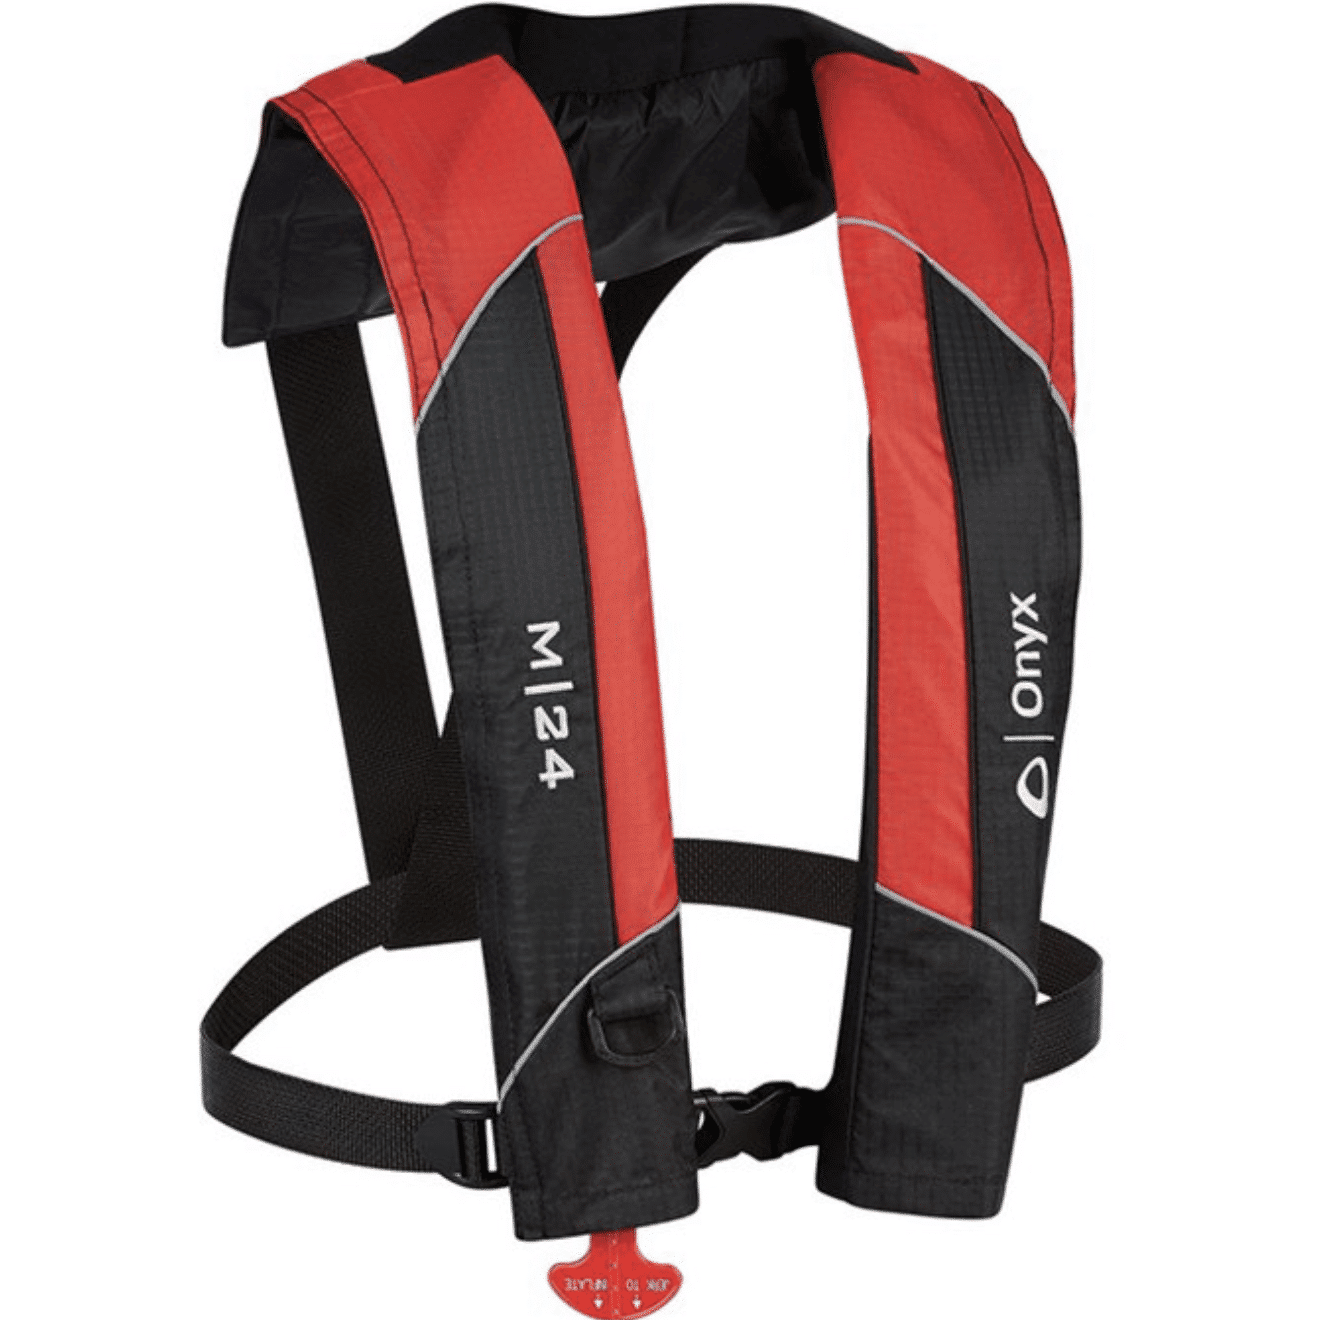 A red inflatable life jacket